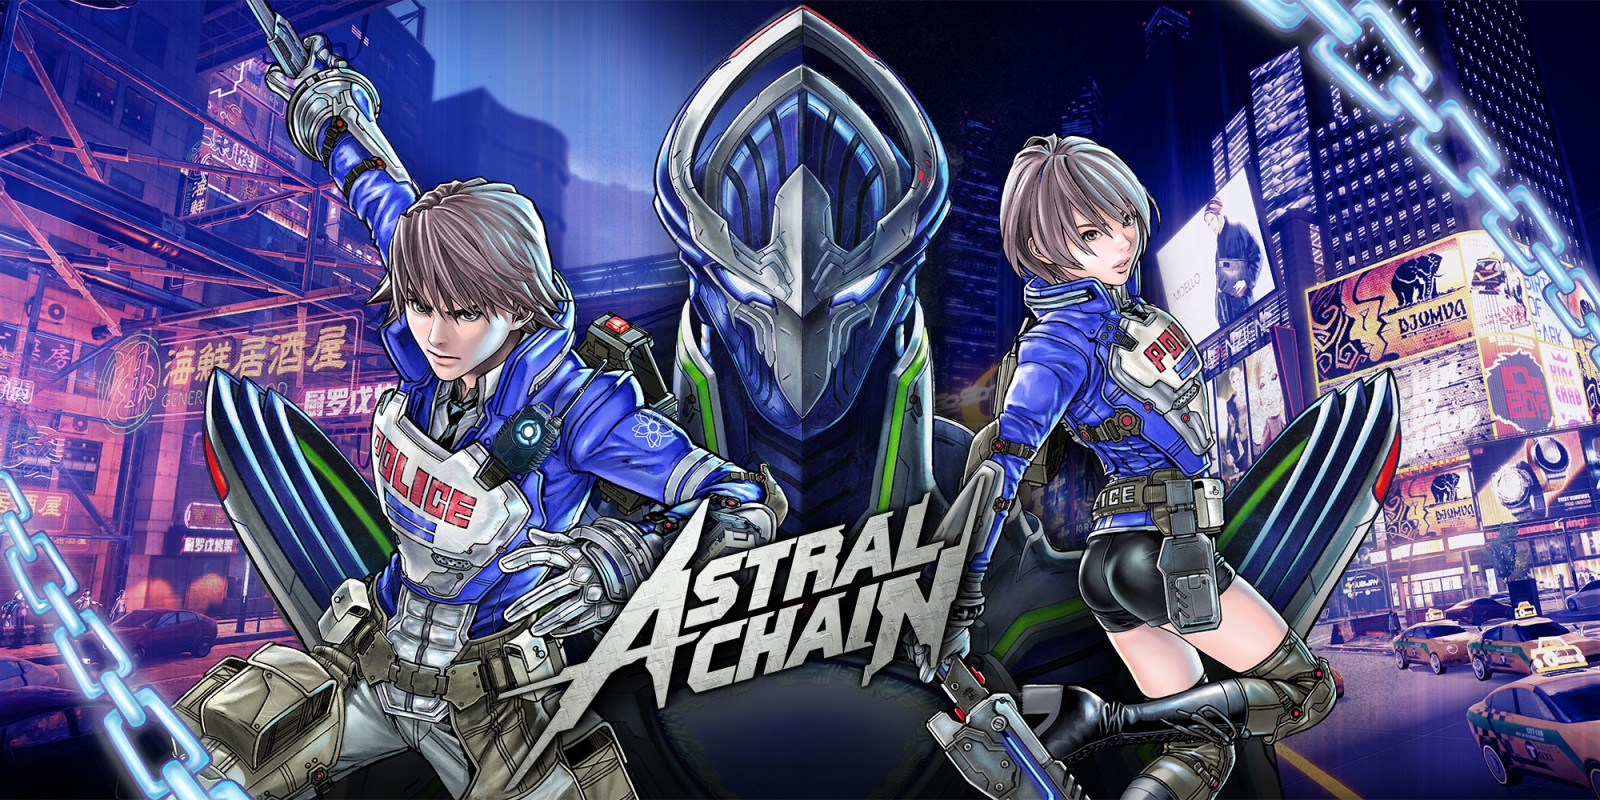 Astral Chain. Limited Edition. [UNBOXING]. - Изображение 1